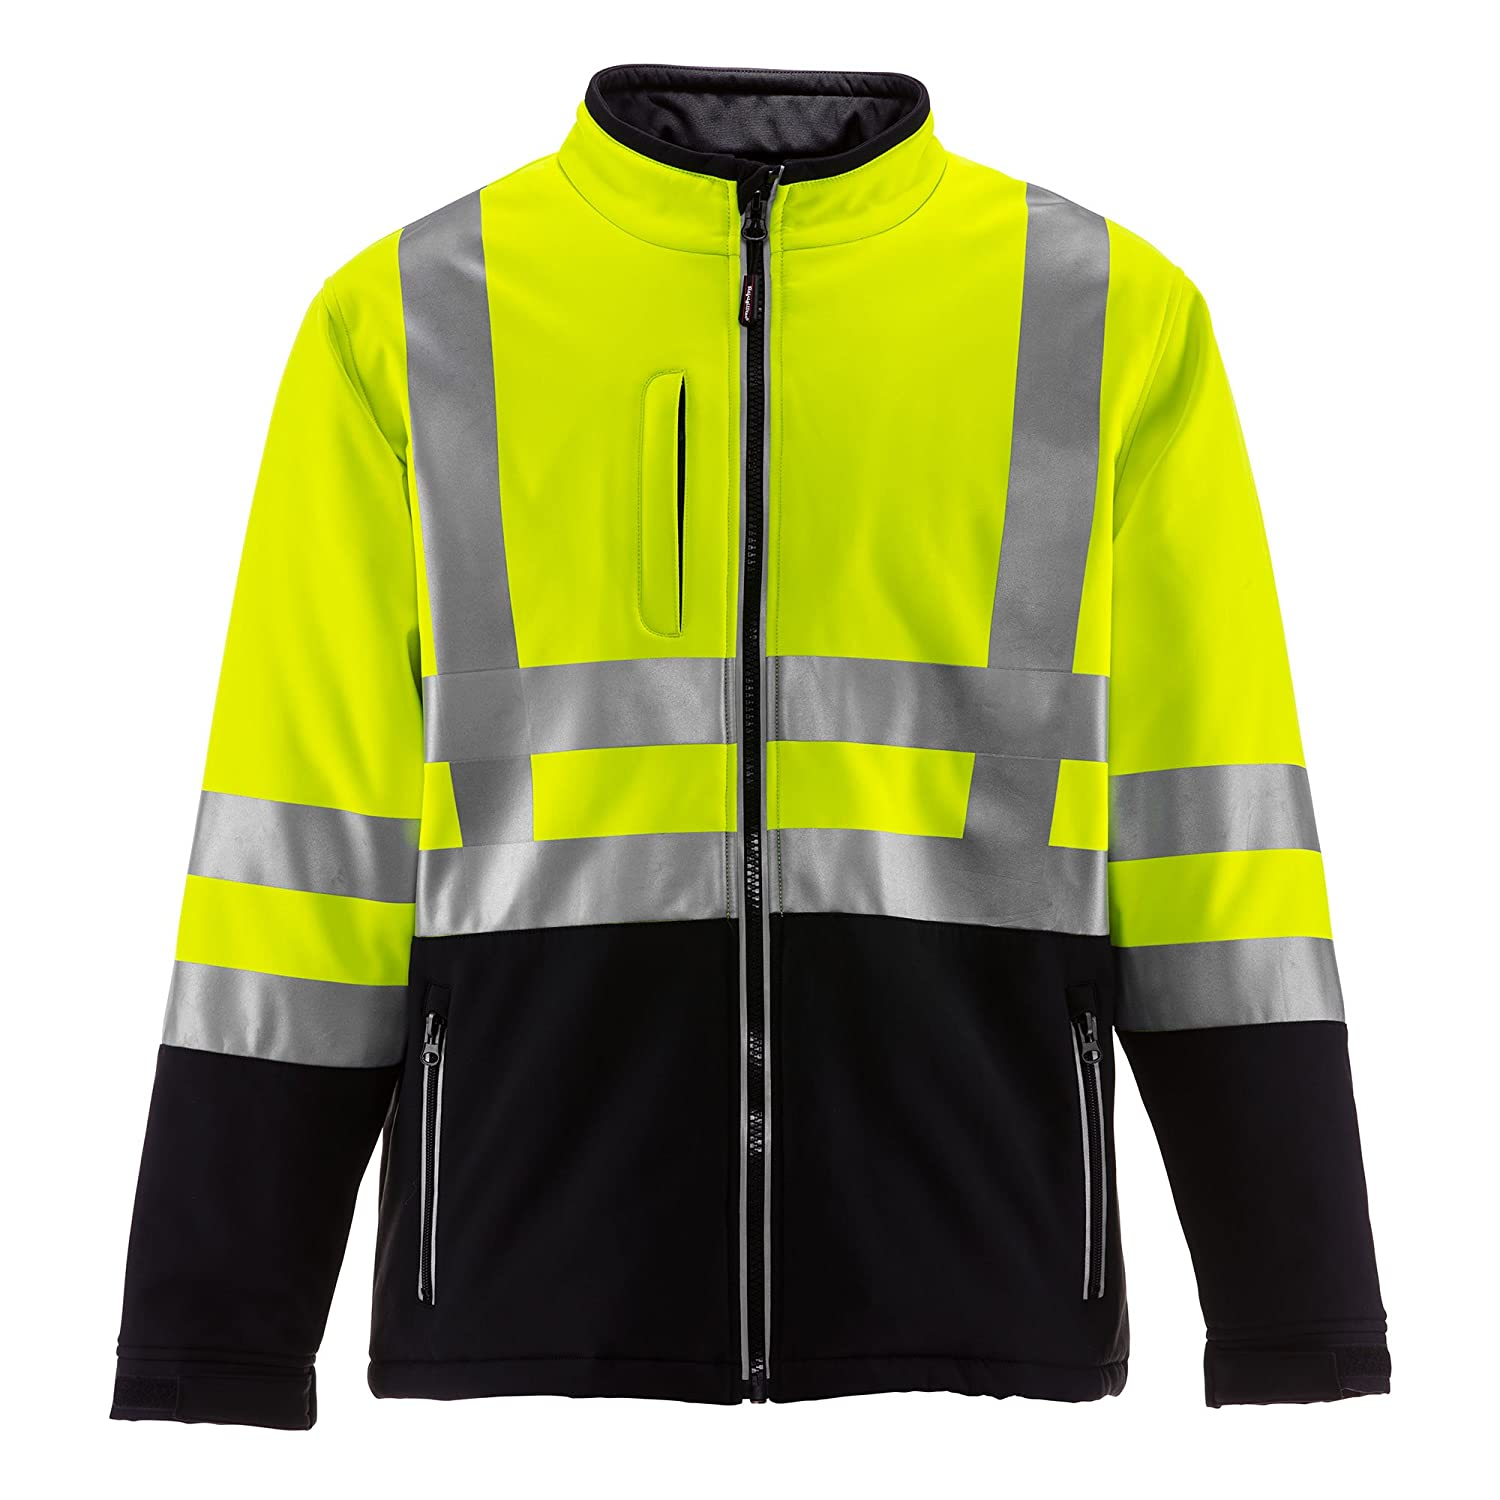 8f15c602f RefrigiWear Men's Hivis Insulated Softshell Jacket - ANSI Class 2 High  Visibility with Reflective Tape